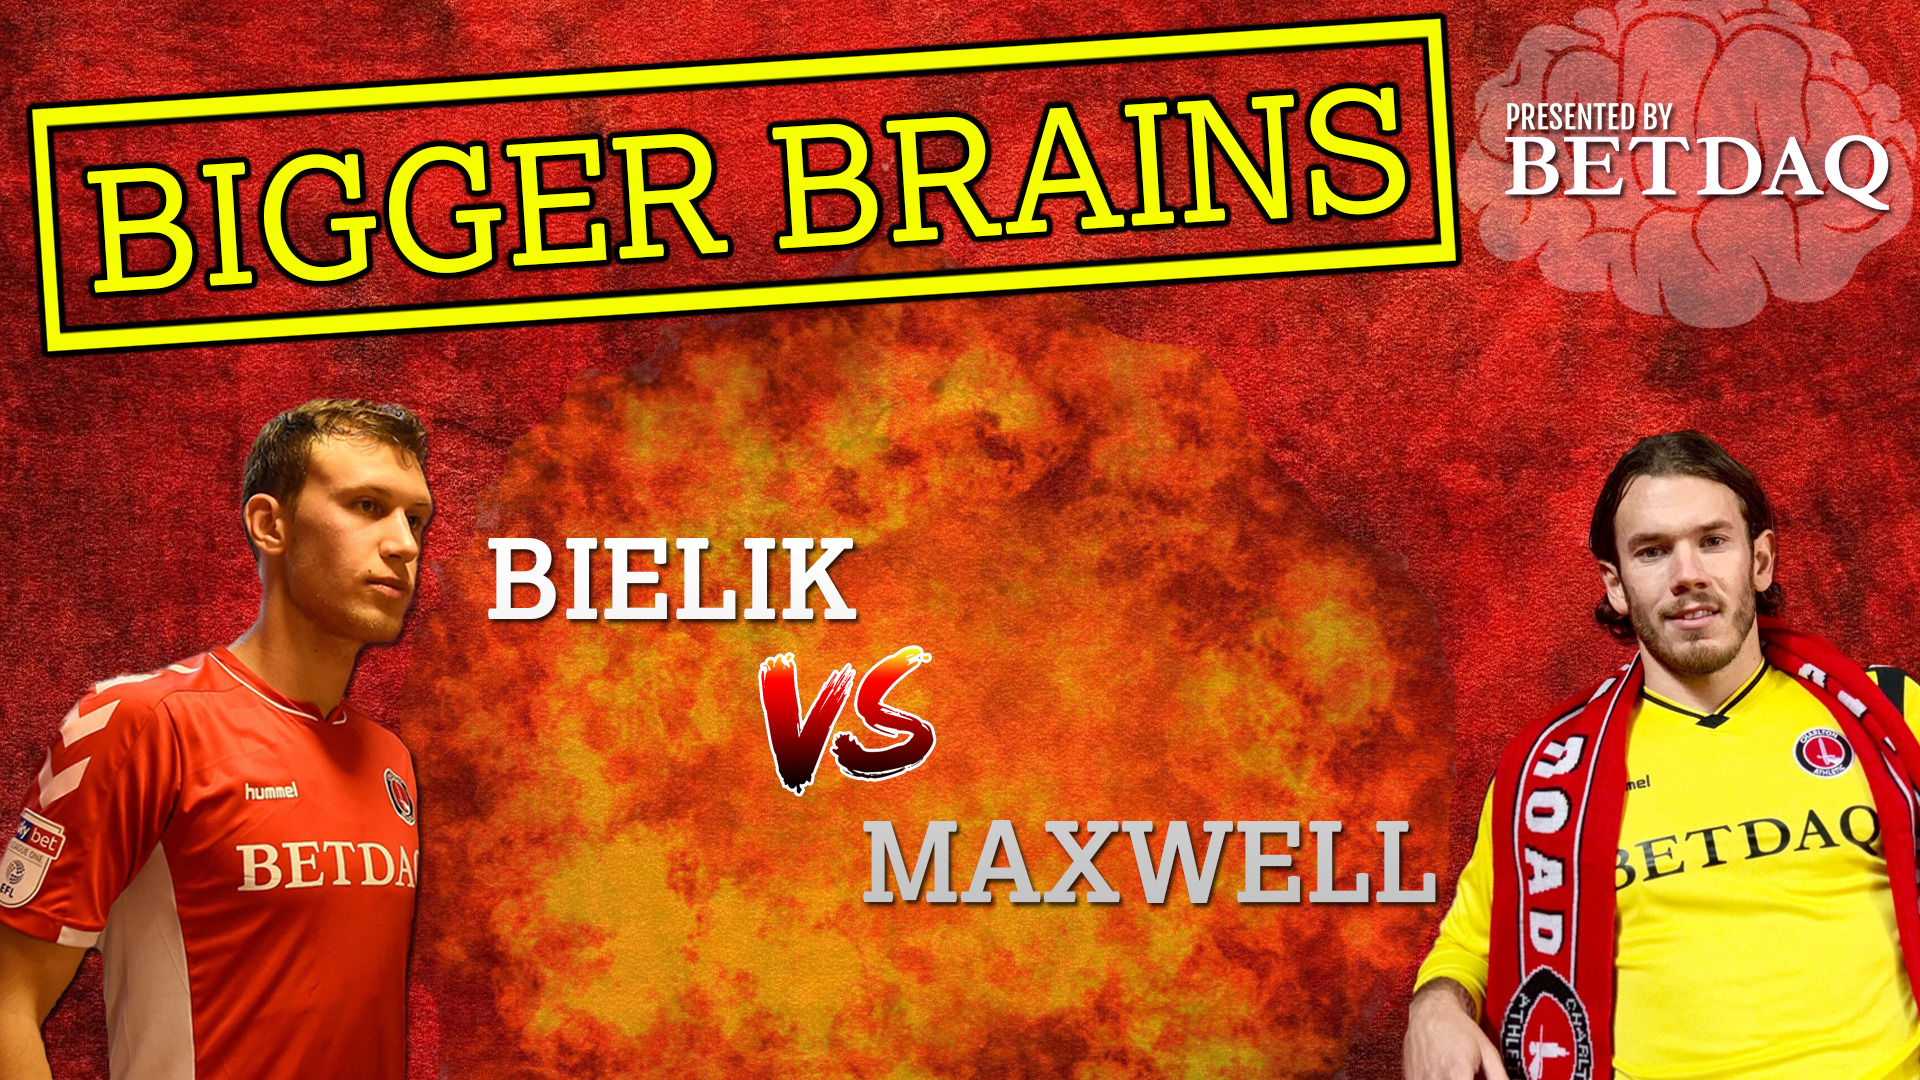 Krystian Bielik vs. Chris Maxwell - BETDAQ's Bigger Brains